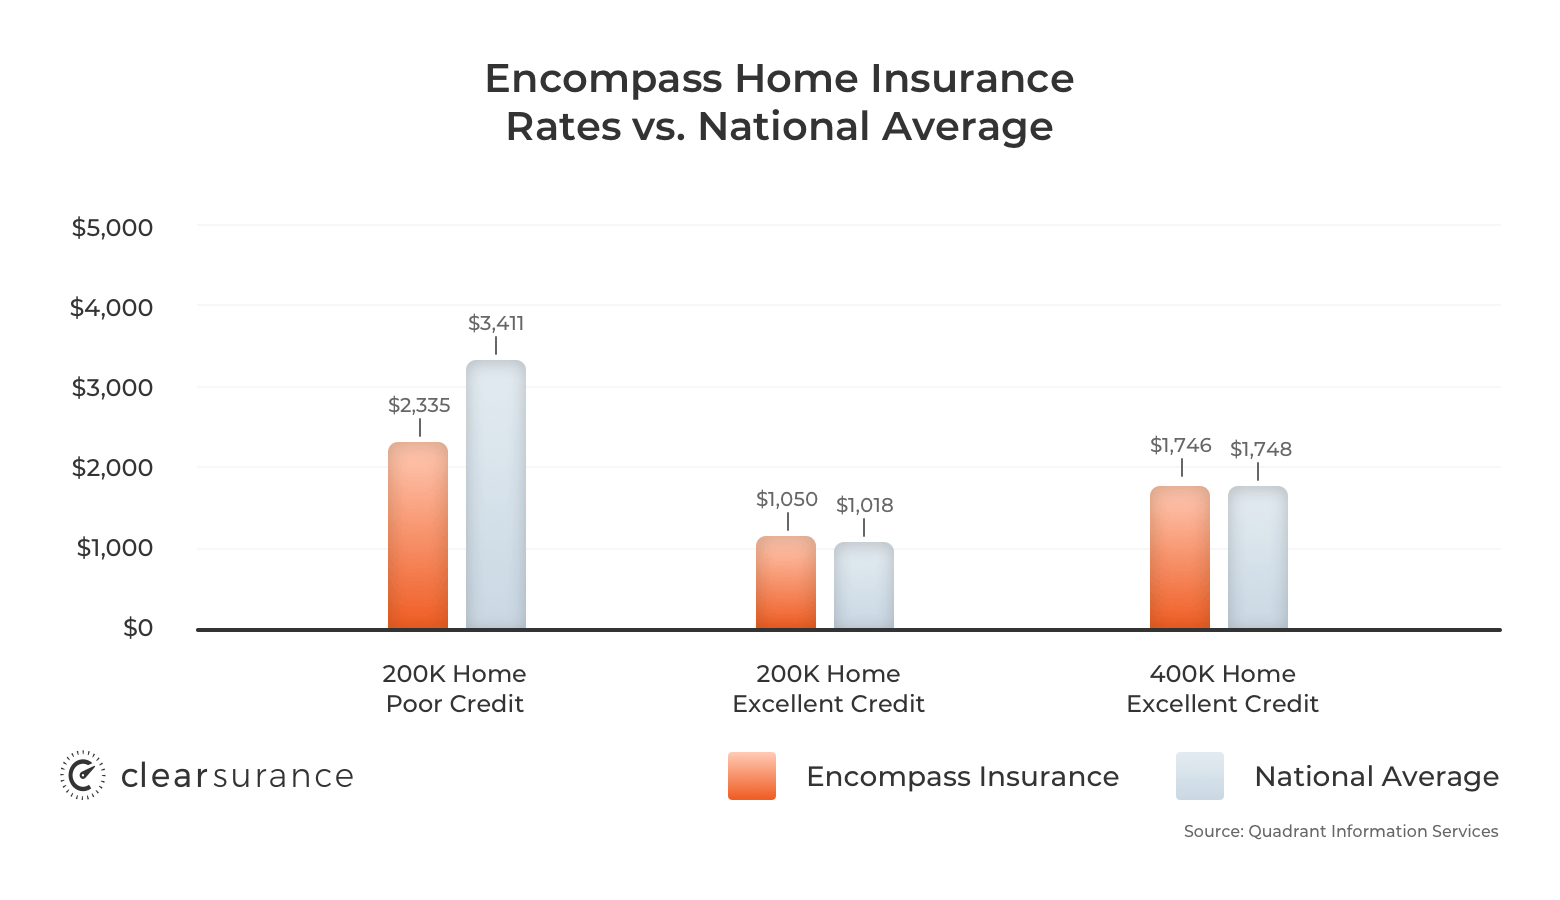 Encompass homeowners insurance rates